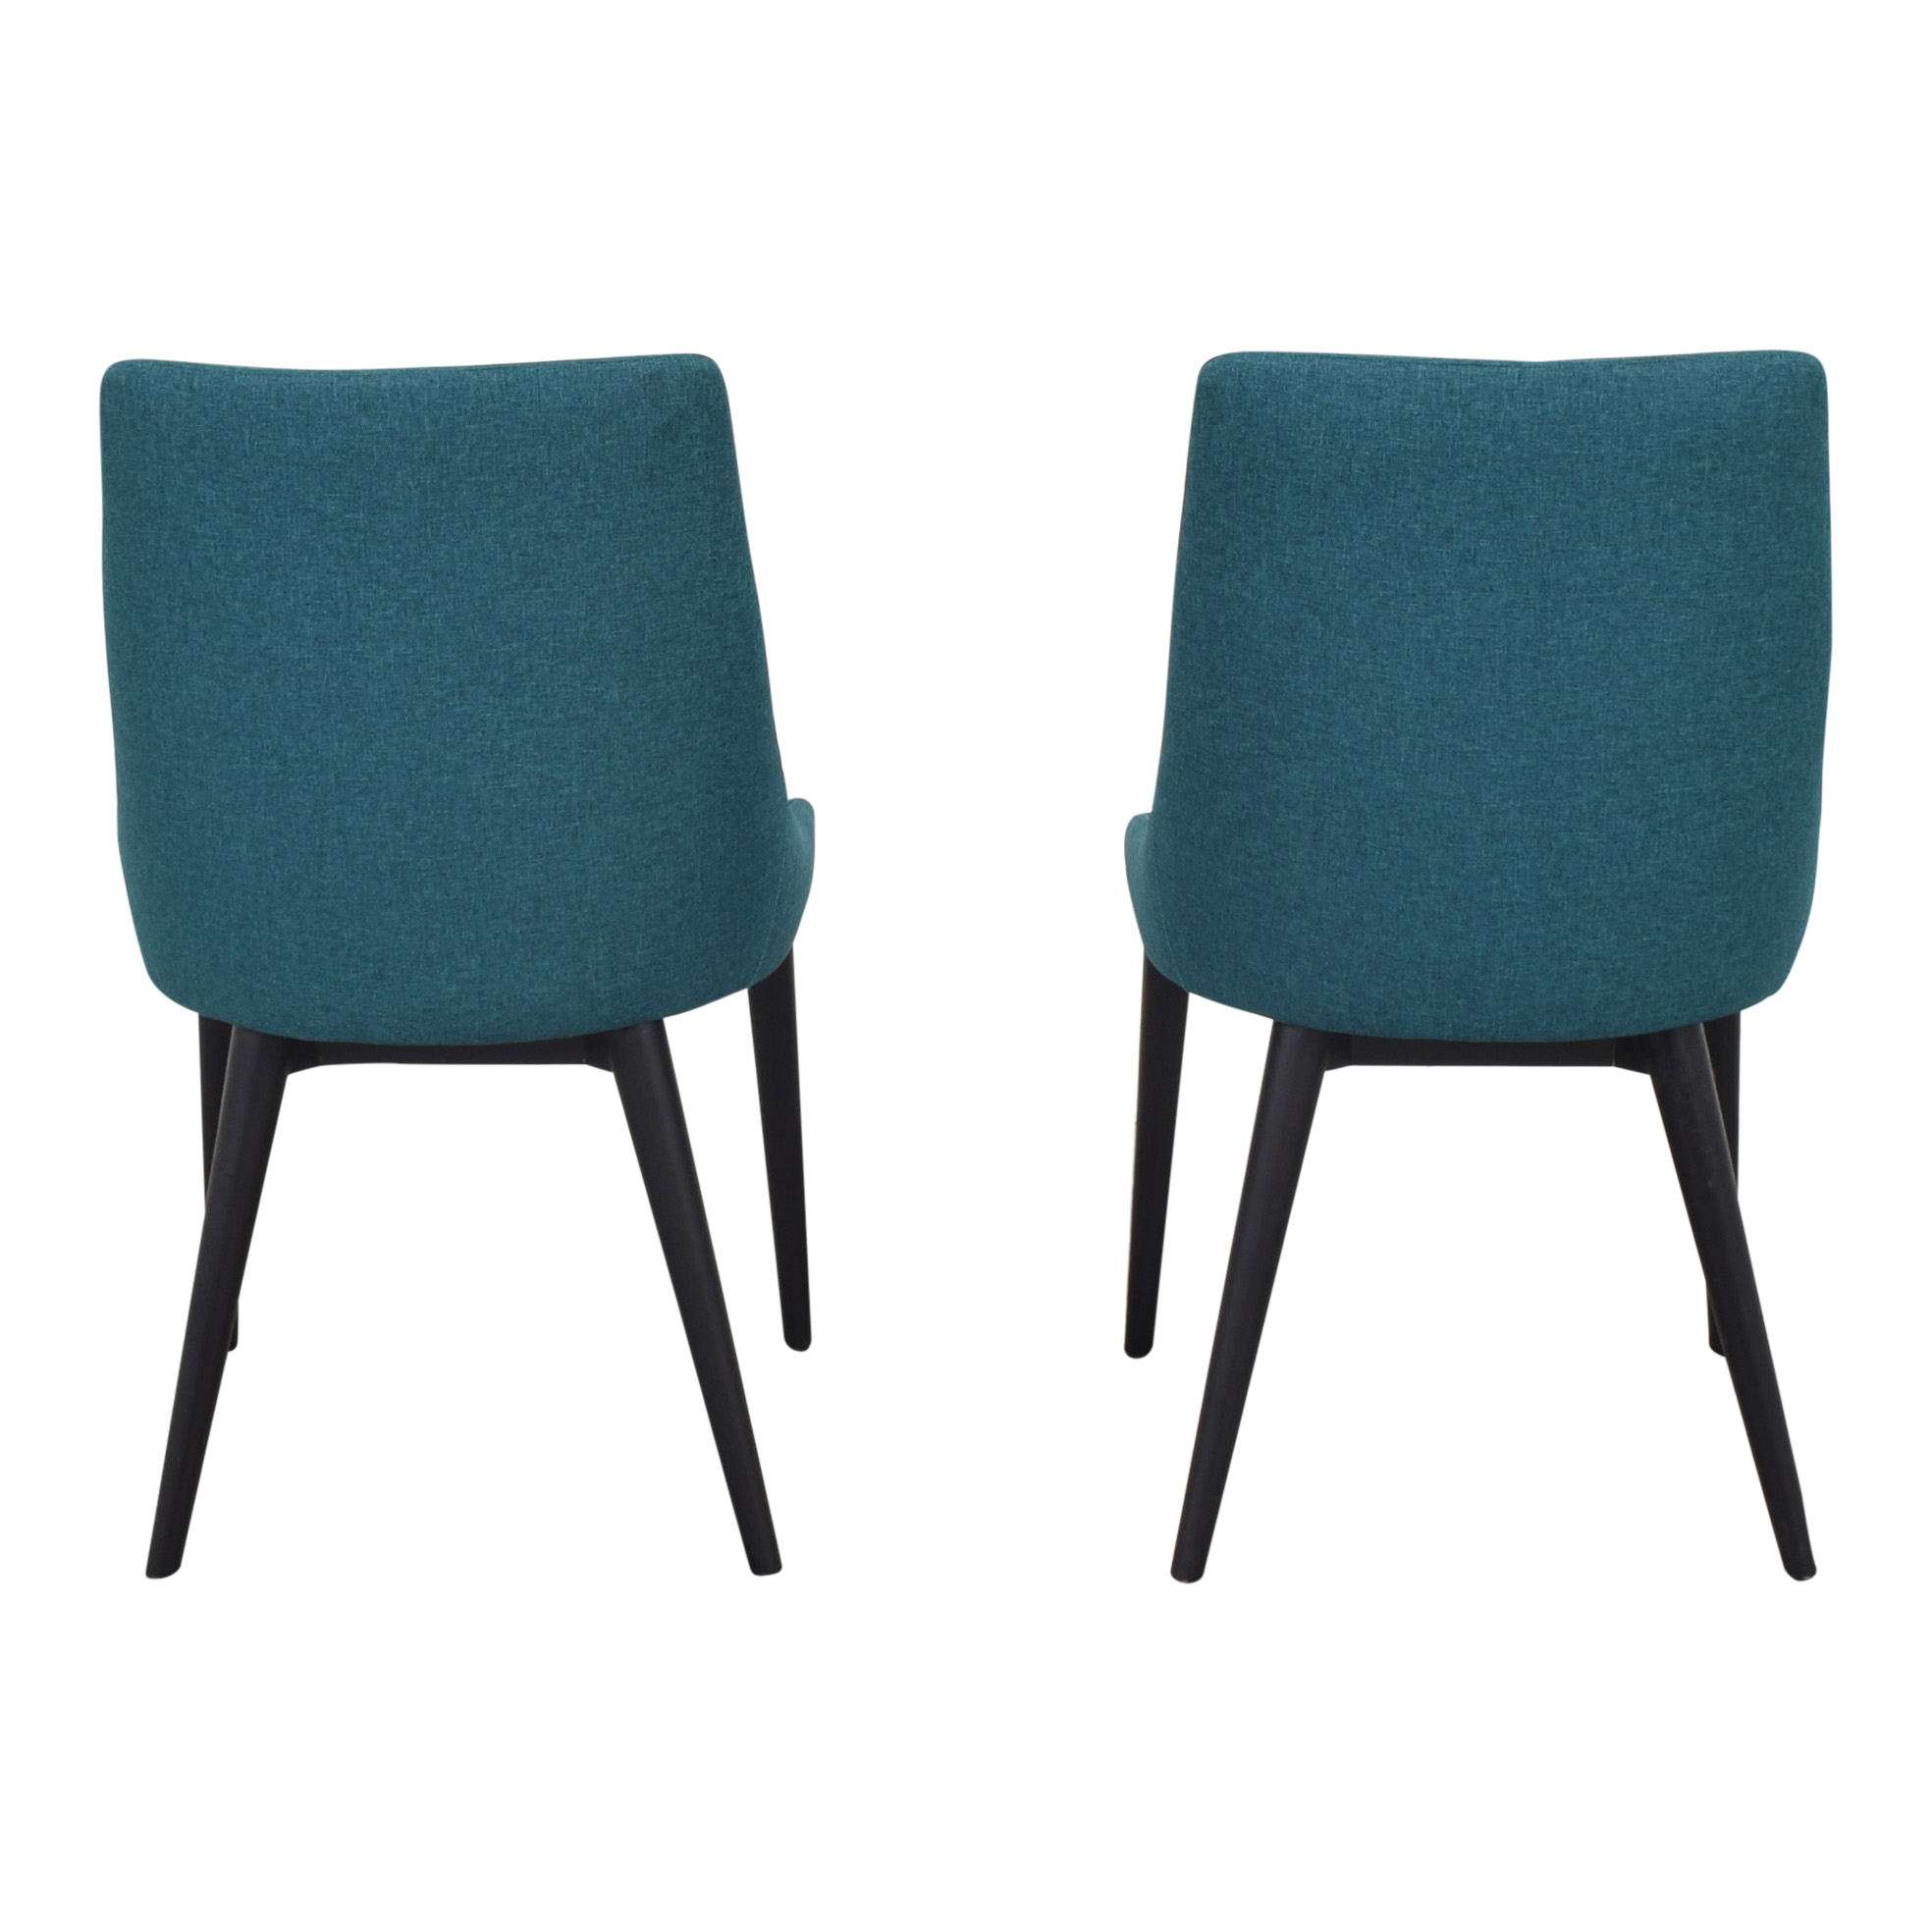 Modway Modway Viscount Dining Chairs dimensions